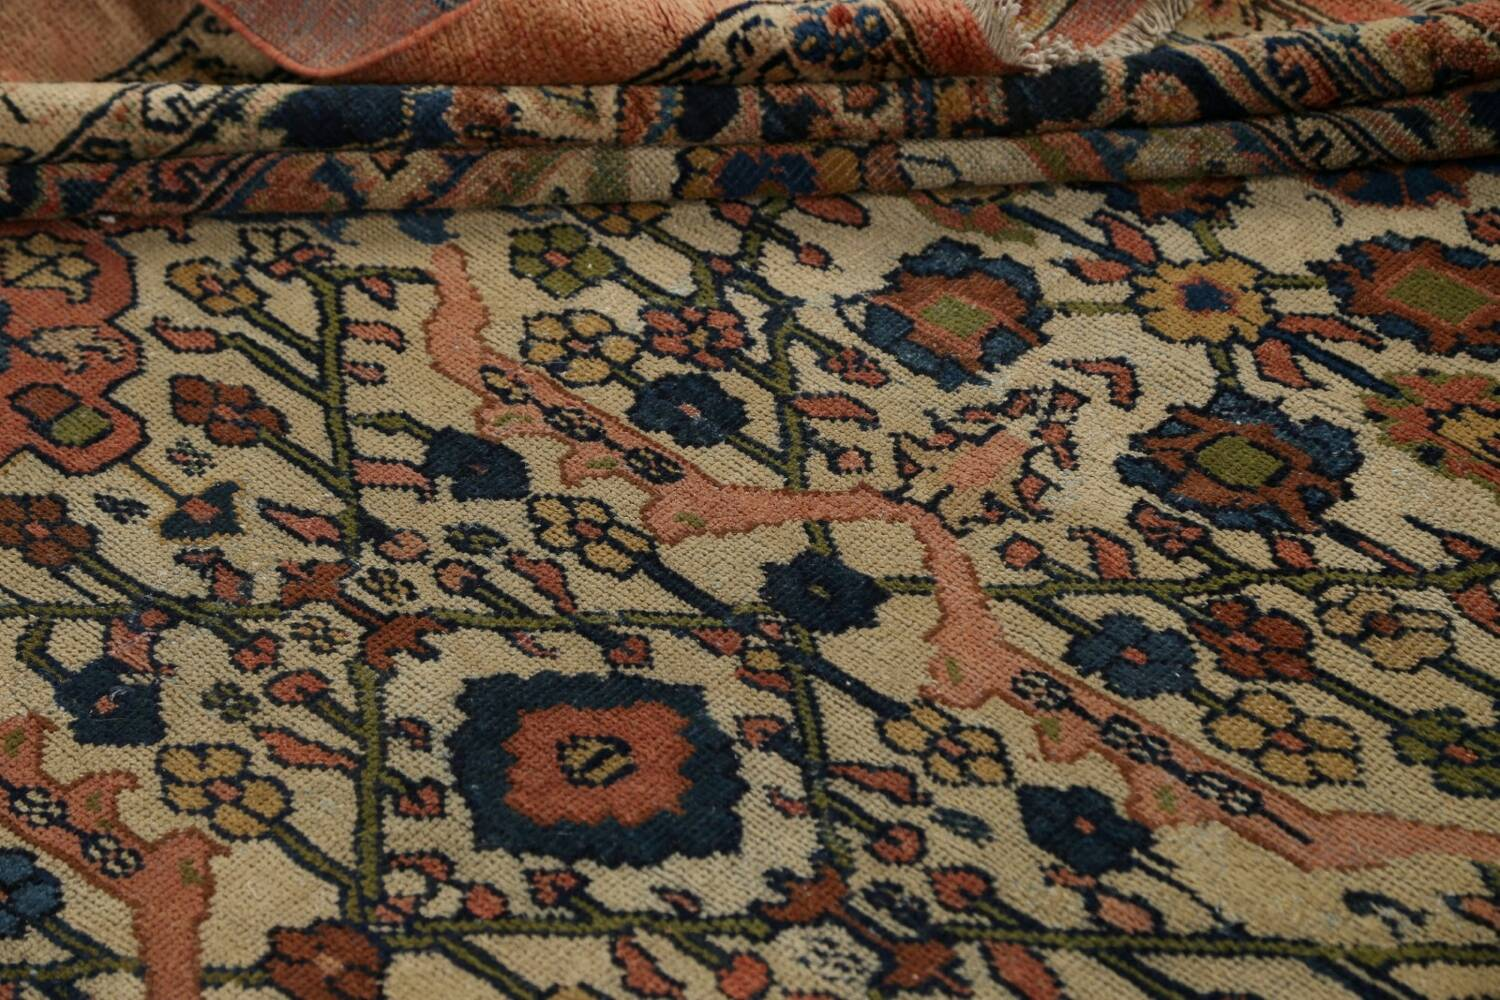 Pre-1900 Antique Vegetable Dye Sultanabad Persian Area Rug 10x13 image 17